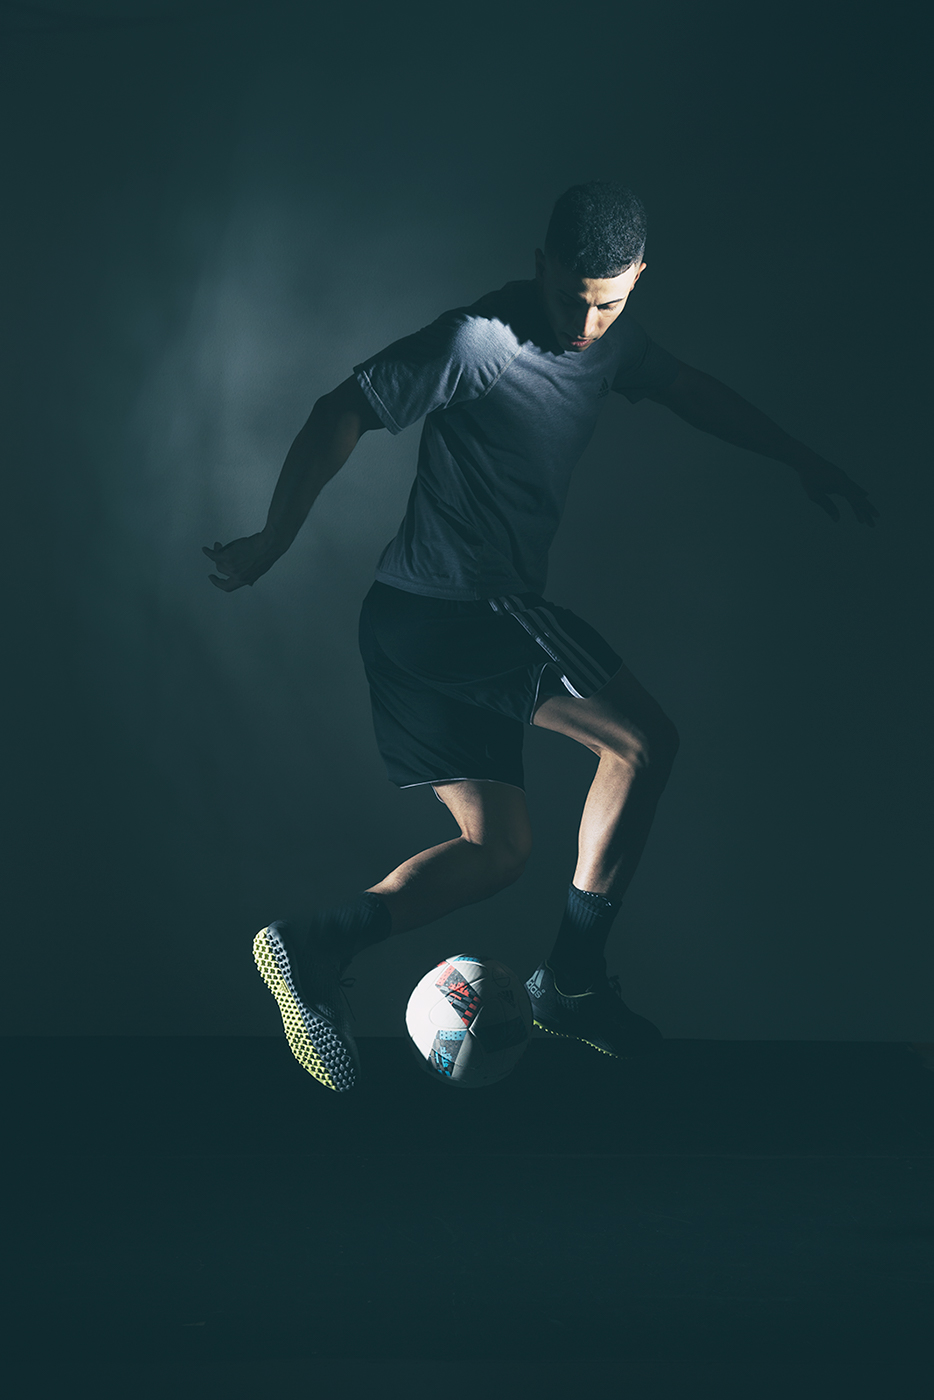 Commercial photographer Portland - man dribbling ball in dramatic light